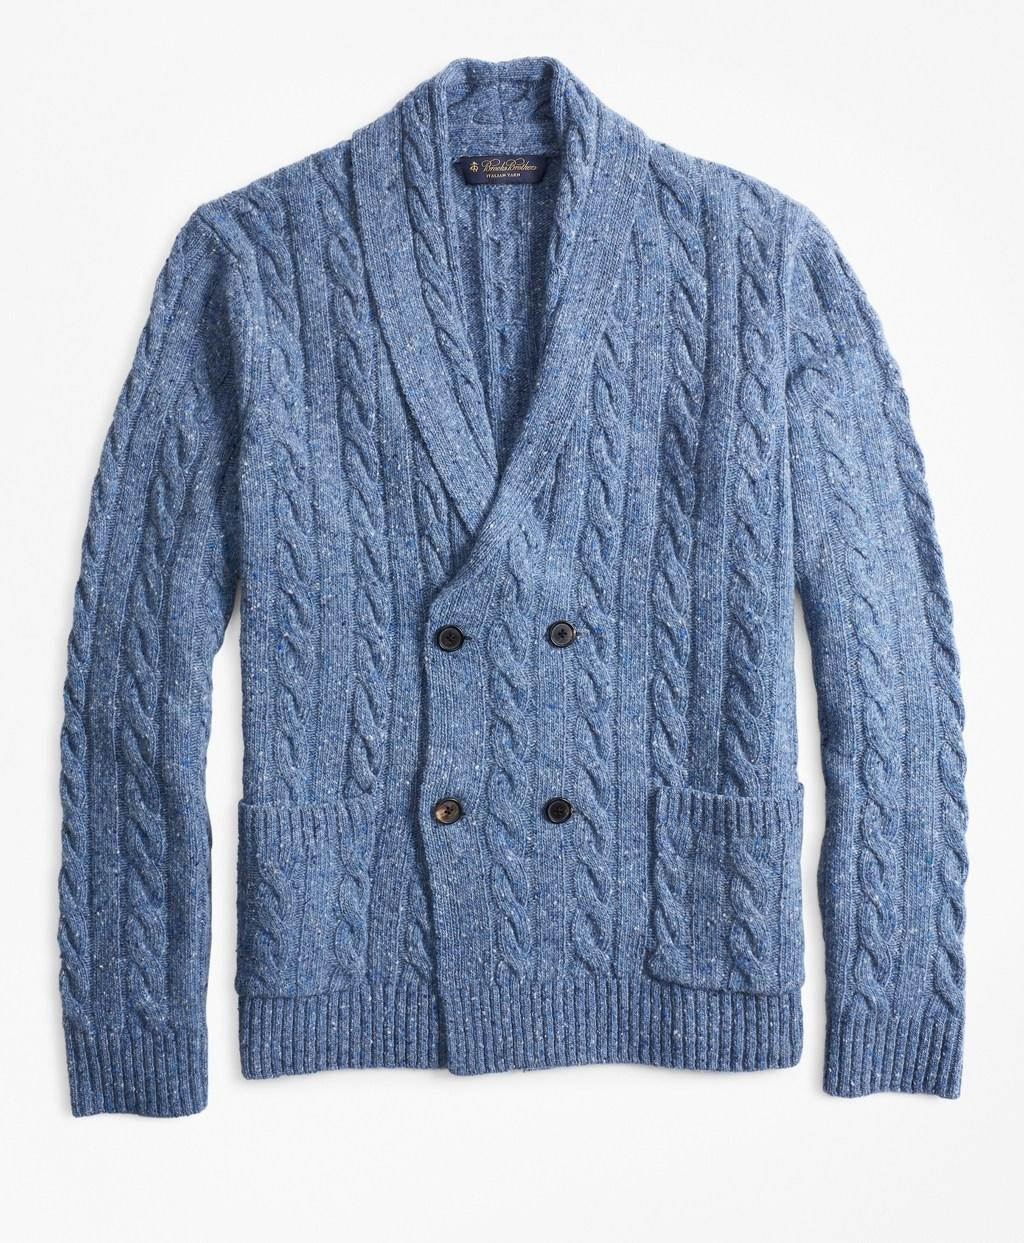 """<span>$298; buy now at <a href=""""https://www.brooksbrothers.com/Double-Breasted-Cable-Cardigan/MS00918,default,pd.html?ICID=Bestlife_MS00918"""" rel=""""nofollow noopener"""" target=""""_blank"""" data-ylk=""""slk:brooksbrothers.com"""" class=""""link rapid-noclick-resp"""">brooksbrothers.com</a></span> For a snappy and comfortable alternative to a blazer, consider the cardigan. Yes, yes, we know: cardigans scream """"stuffy""""—usually. This beauty here, though, is an exception to the rule. A double-breasted cut lends a level of gravitas that no traditional sweater can match, while a sharp shawl collar accentuates the shoulders in the same way a well-tailored suit does. And it does that all without sacrificing the coziness you'd expect from a cable-knit."""